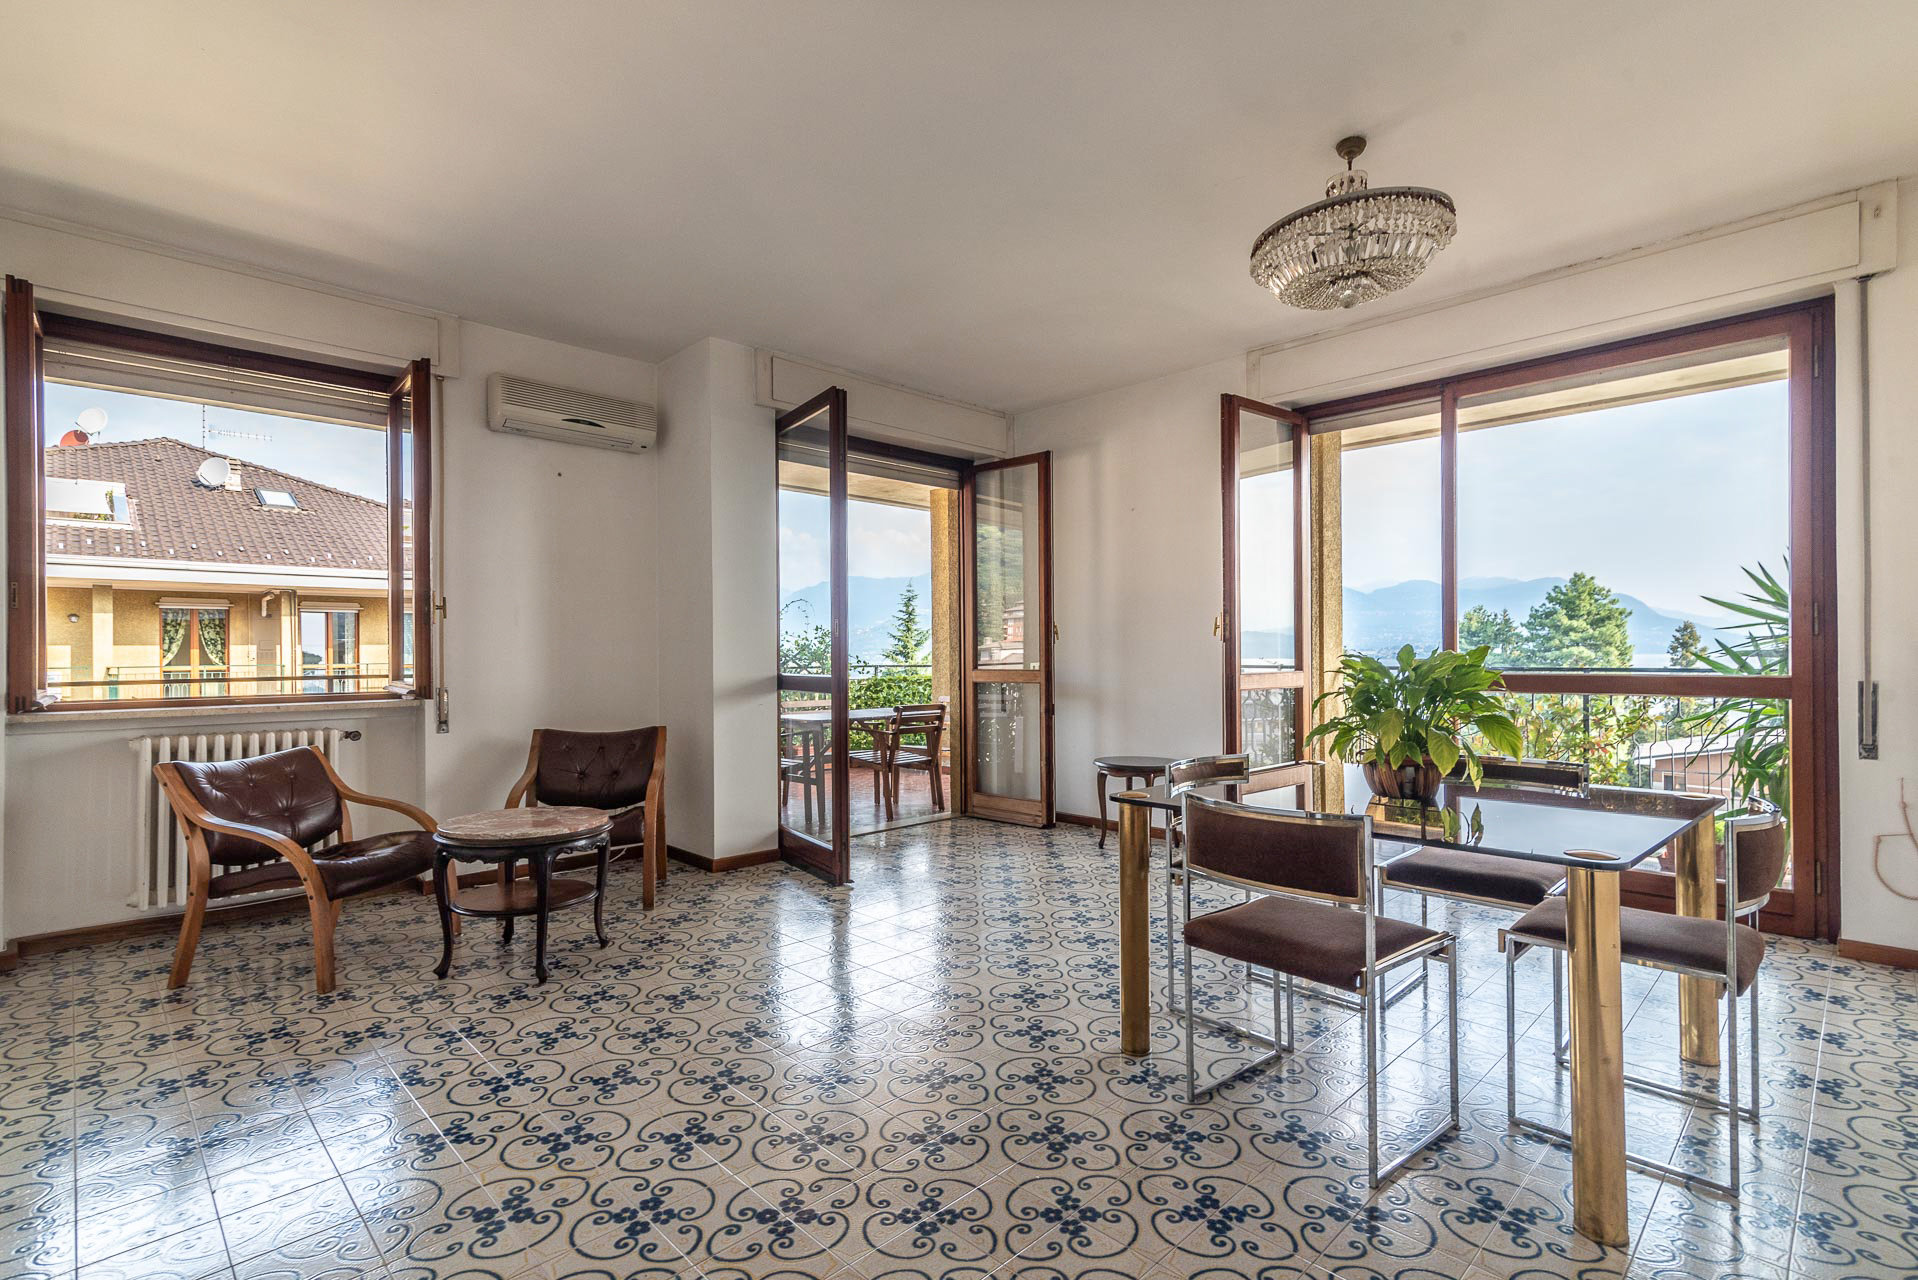 Apartment for rent in Stresa - living room